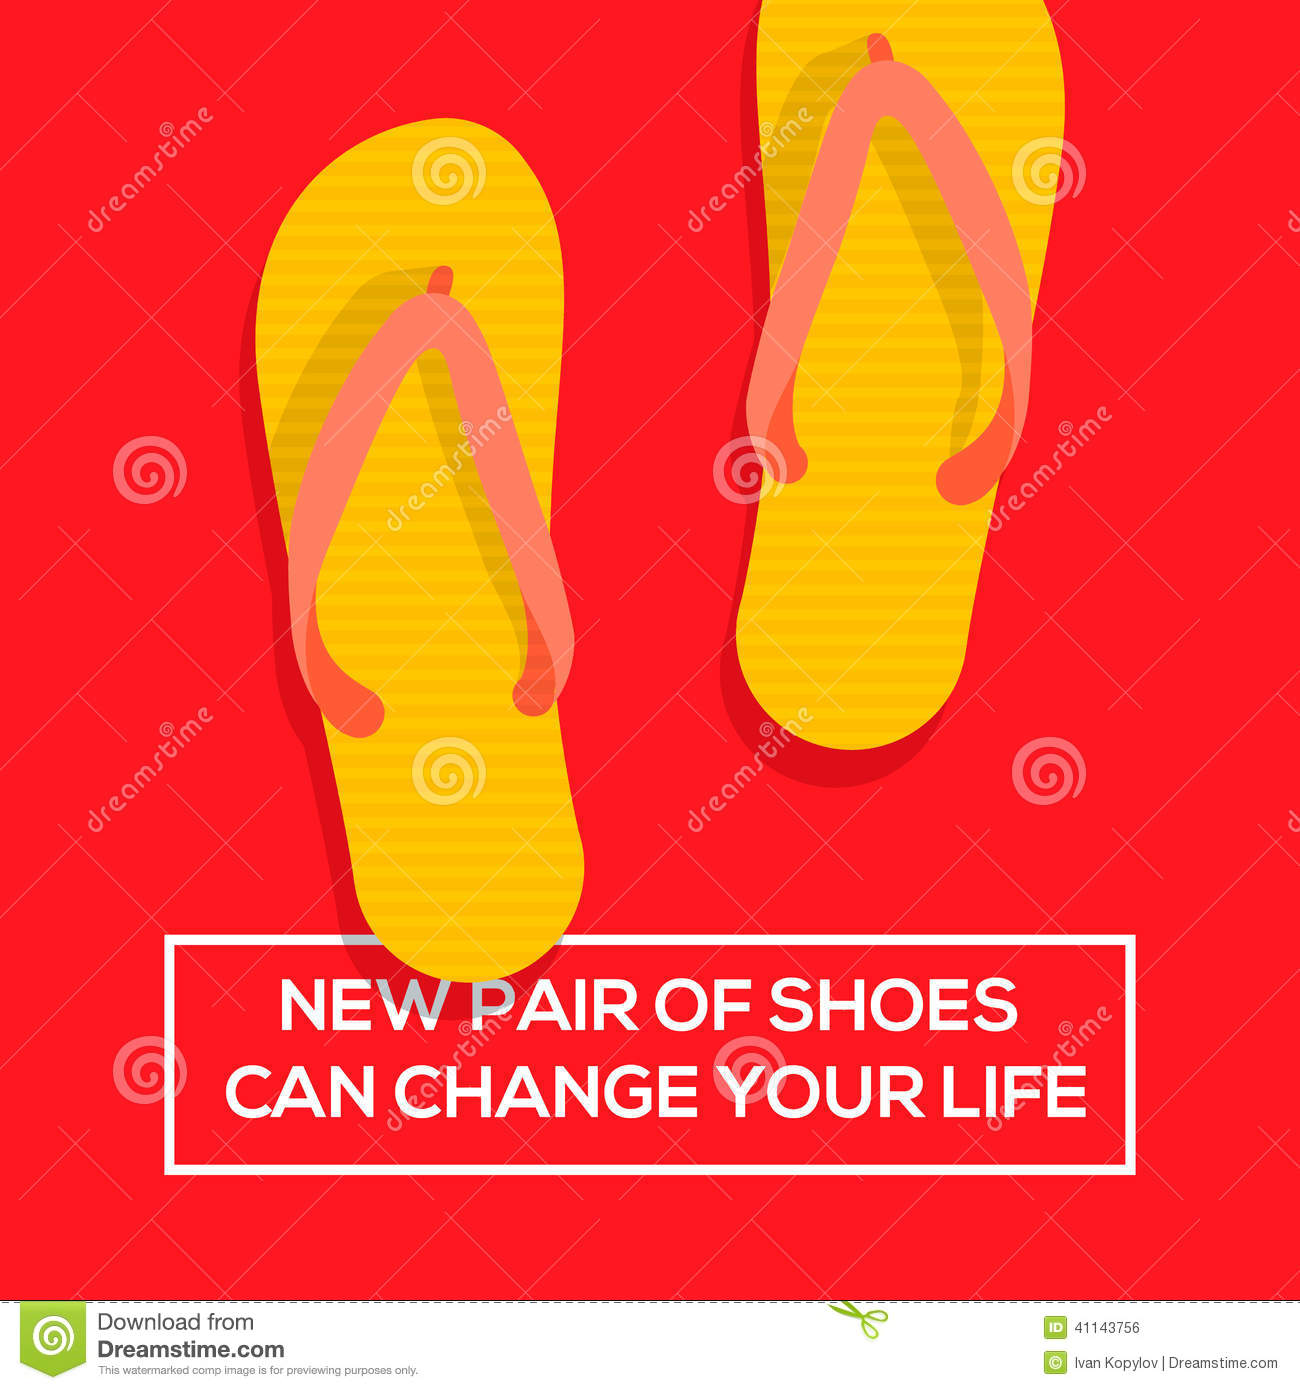 Positivity Can Changeyour Life: New Pair Of Shoes Can Change Your Life Stock Vector